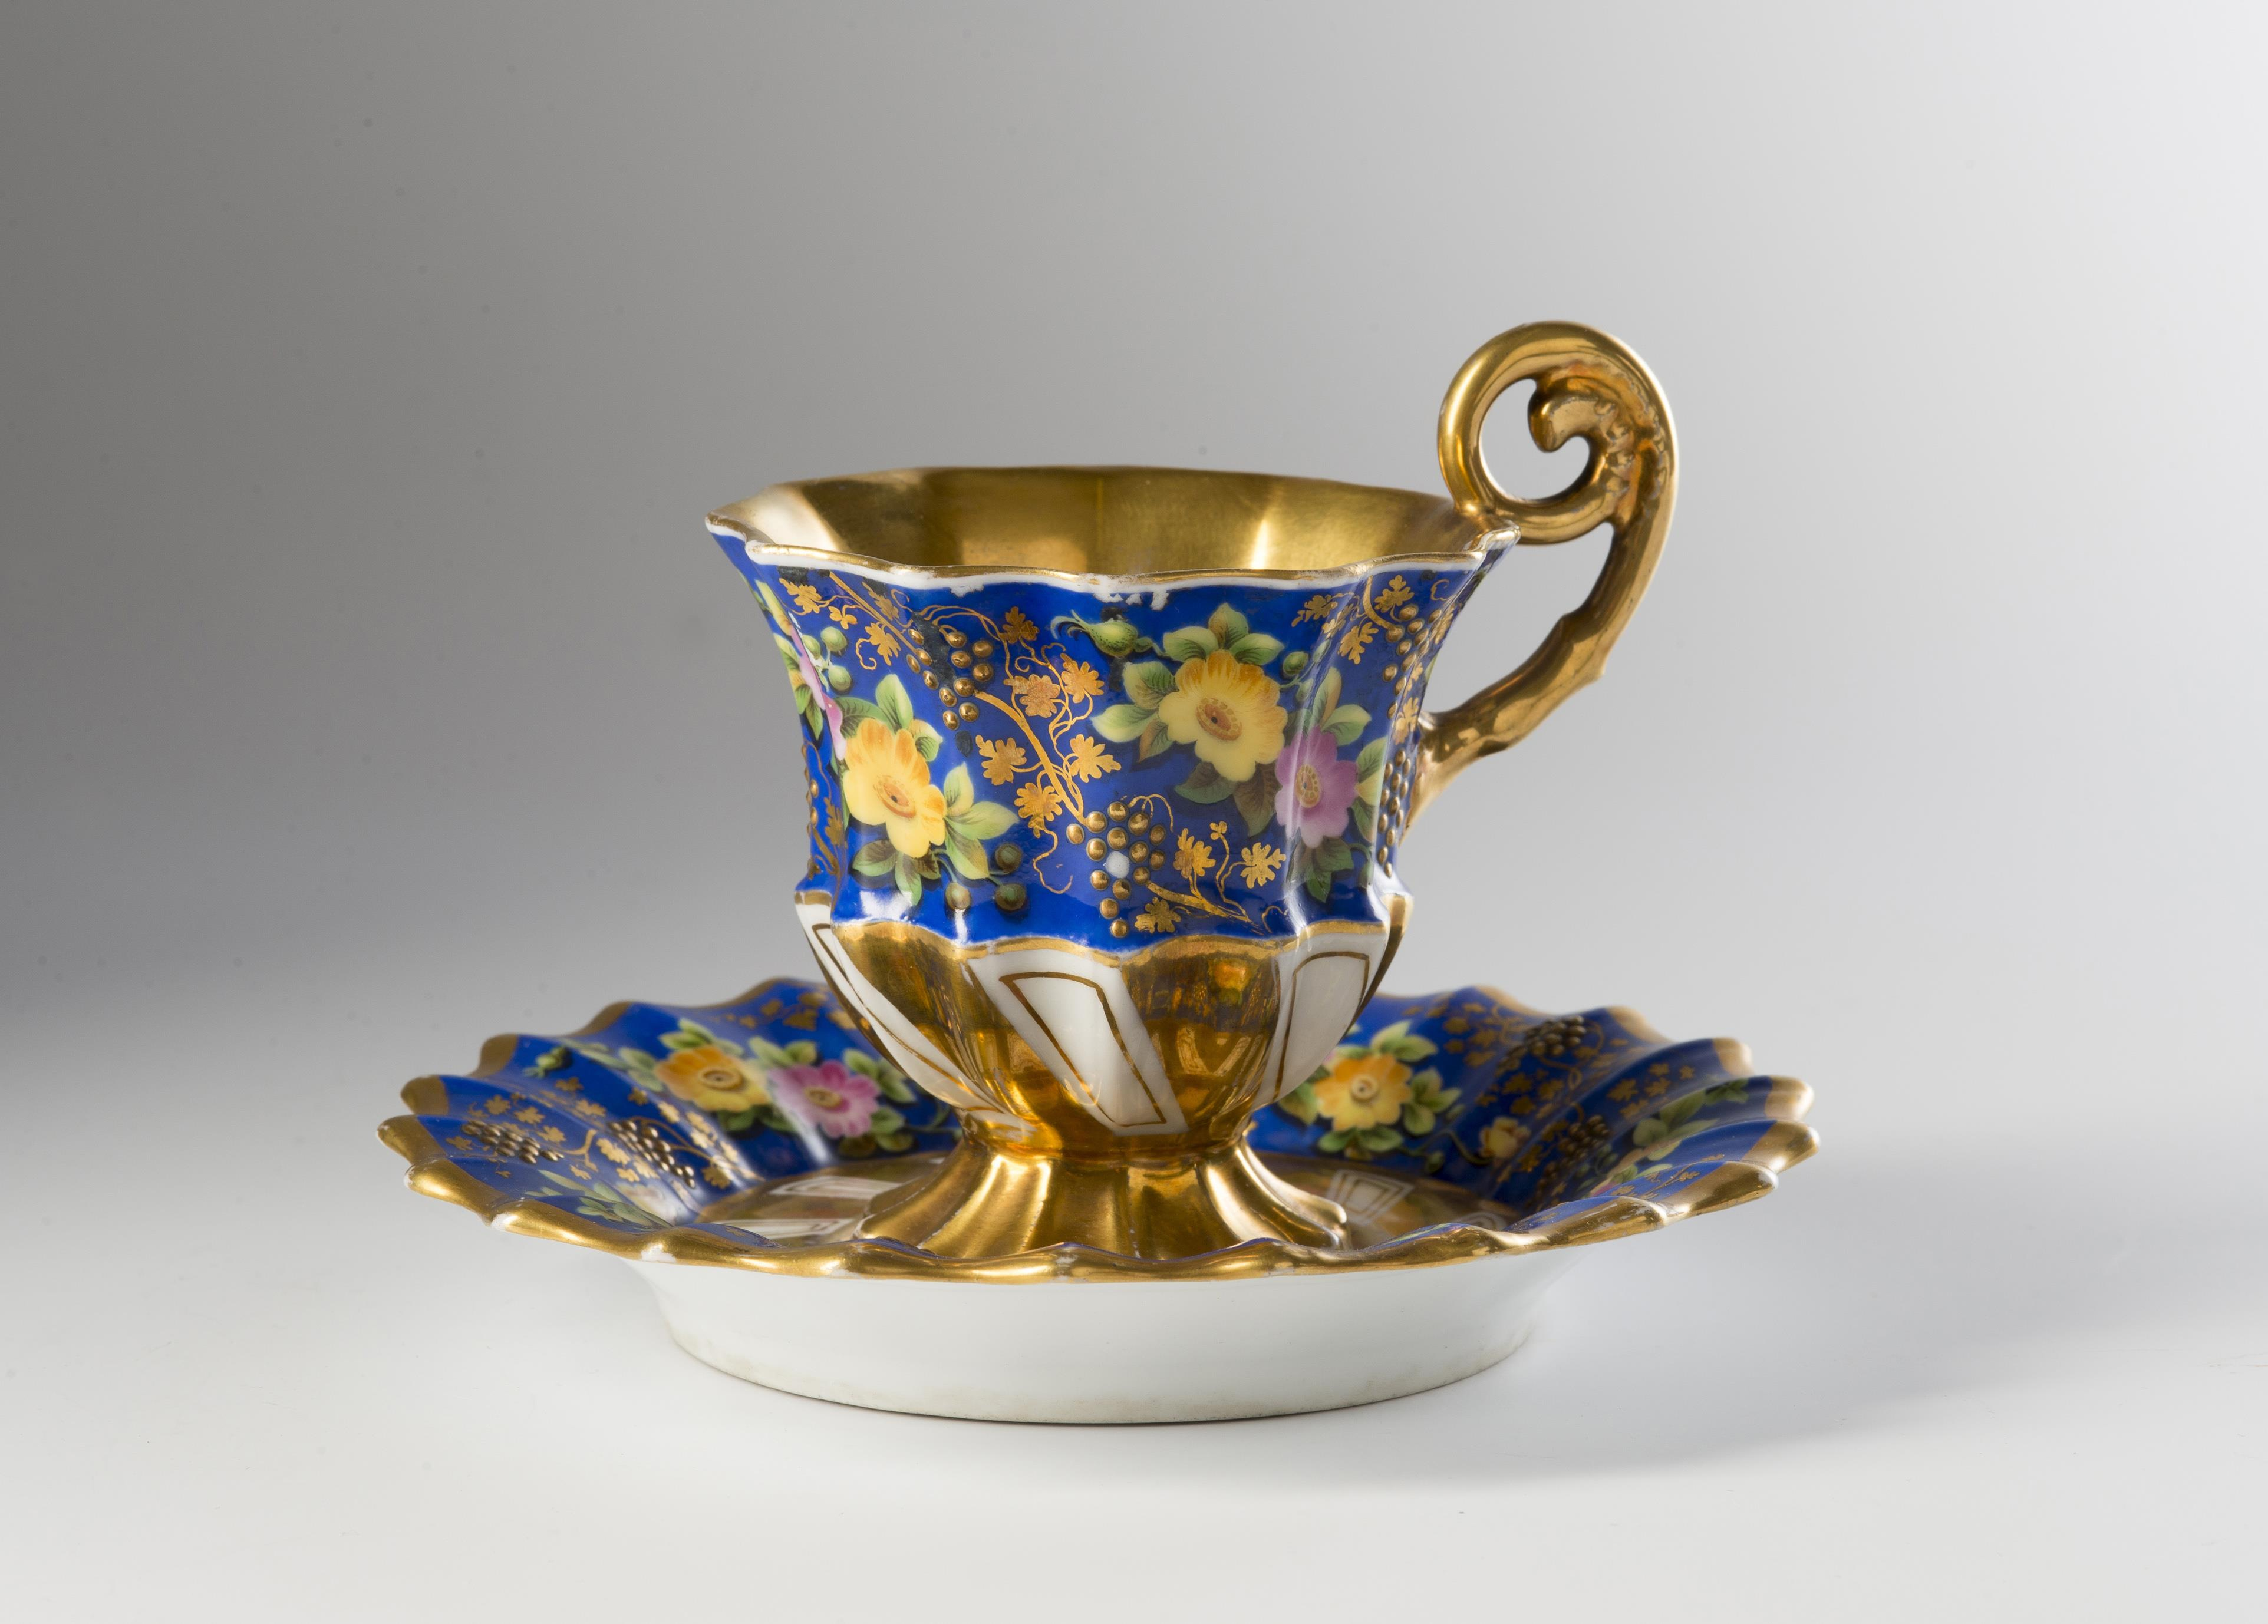 Biedermeier-style Cup with a Saucer - Art and Antiques 2018